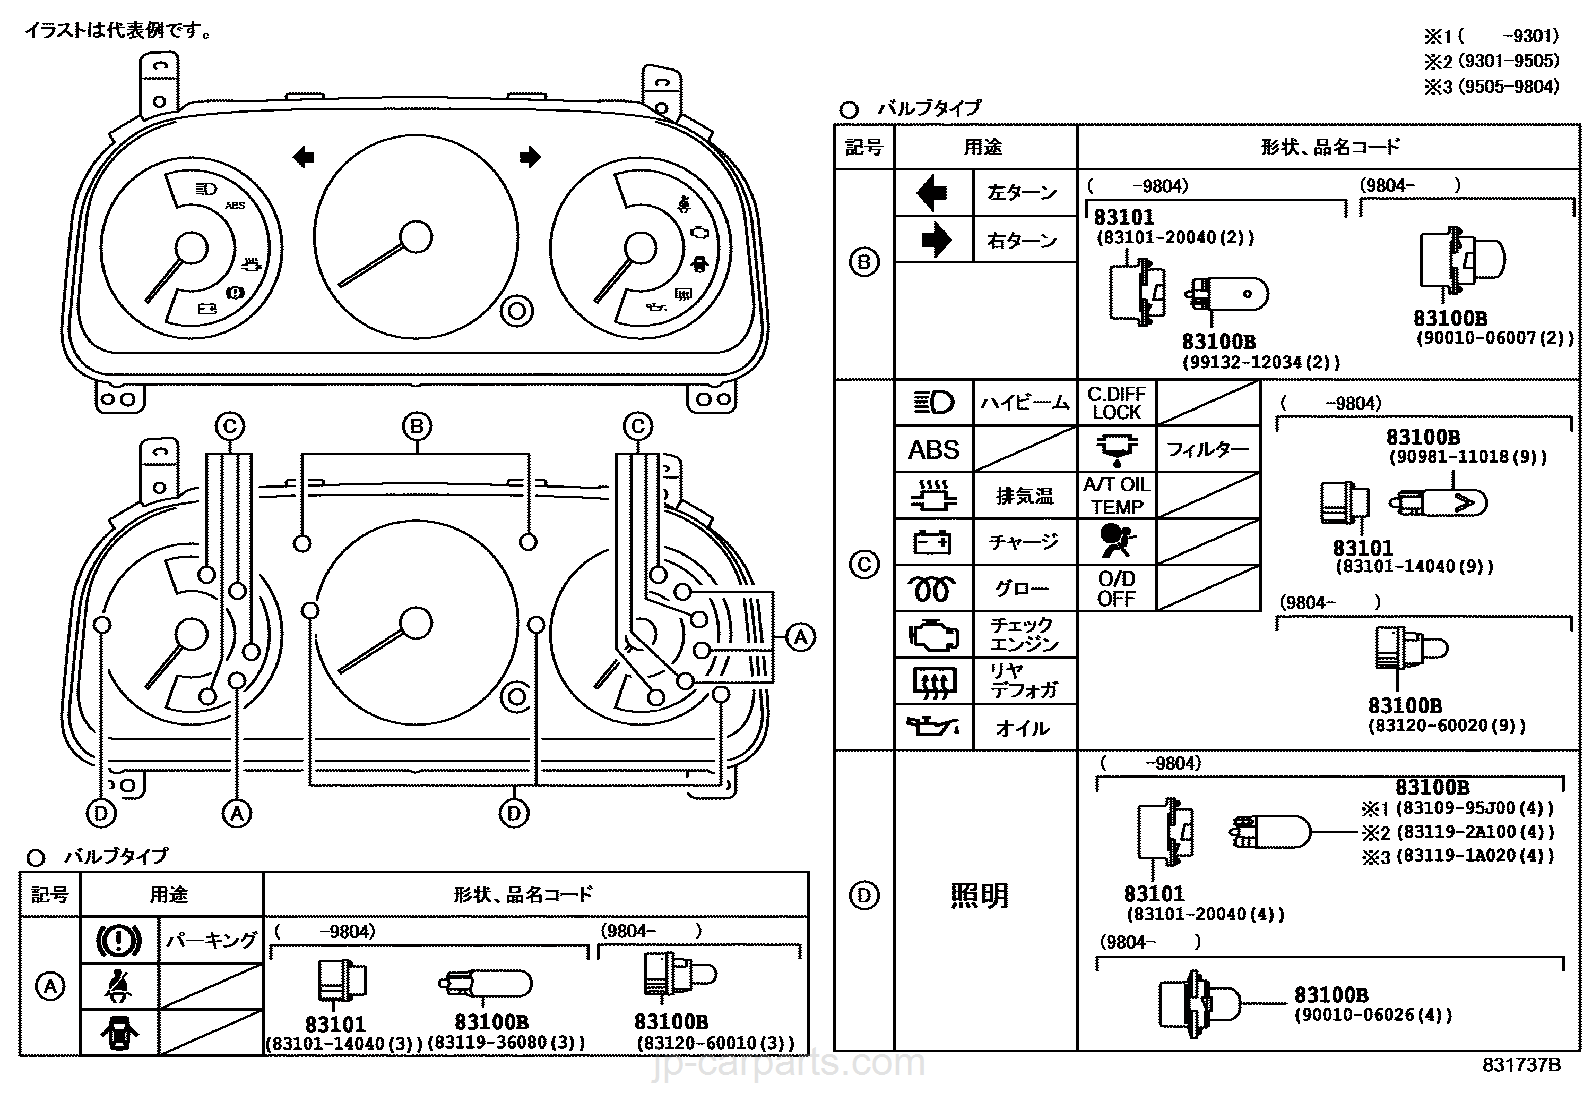 152130_8301_0004 meter toyota part list|jp carparts com yazaki meter wiring diagram at aneh.co